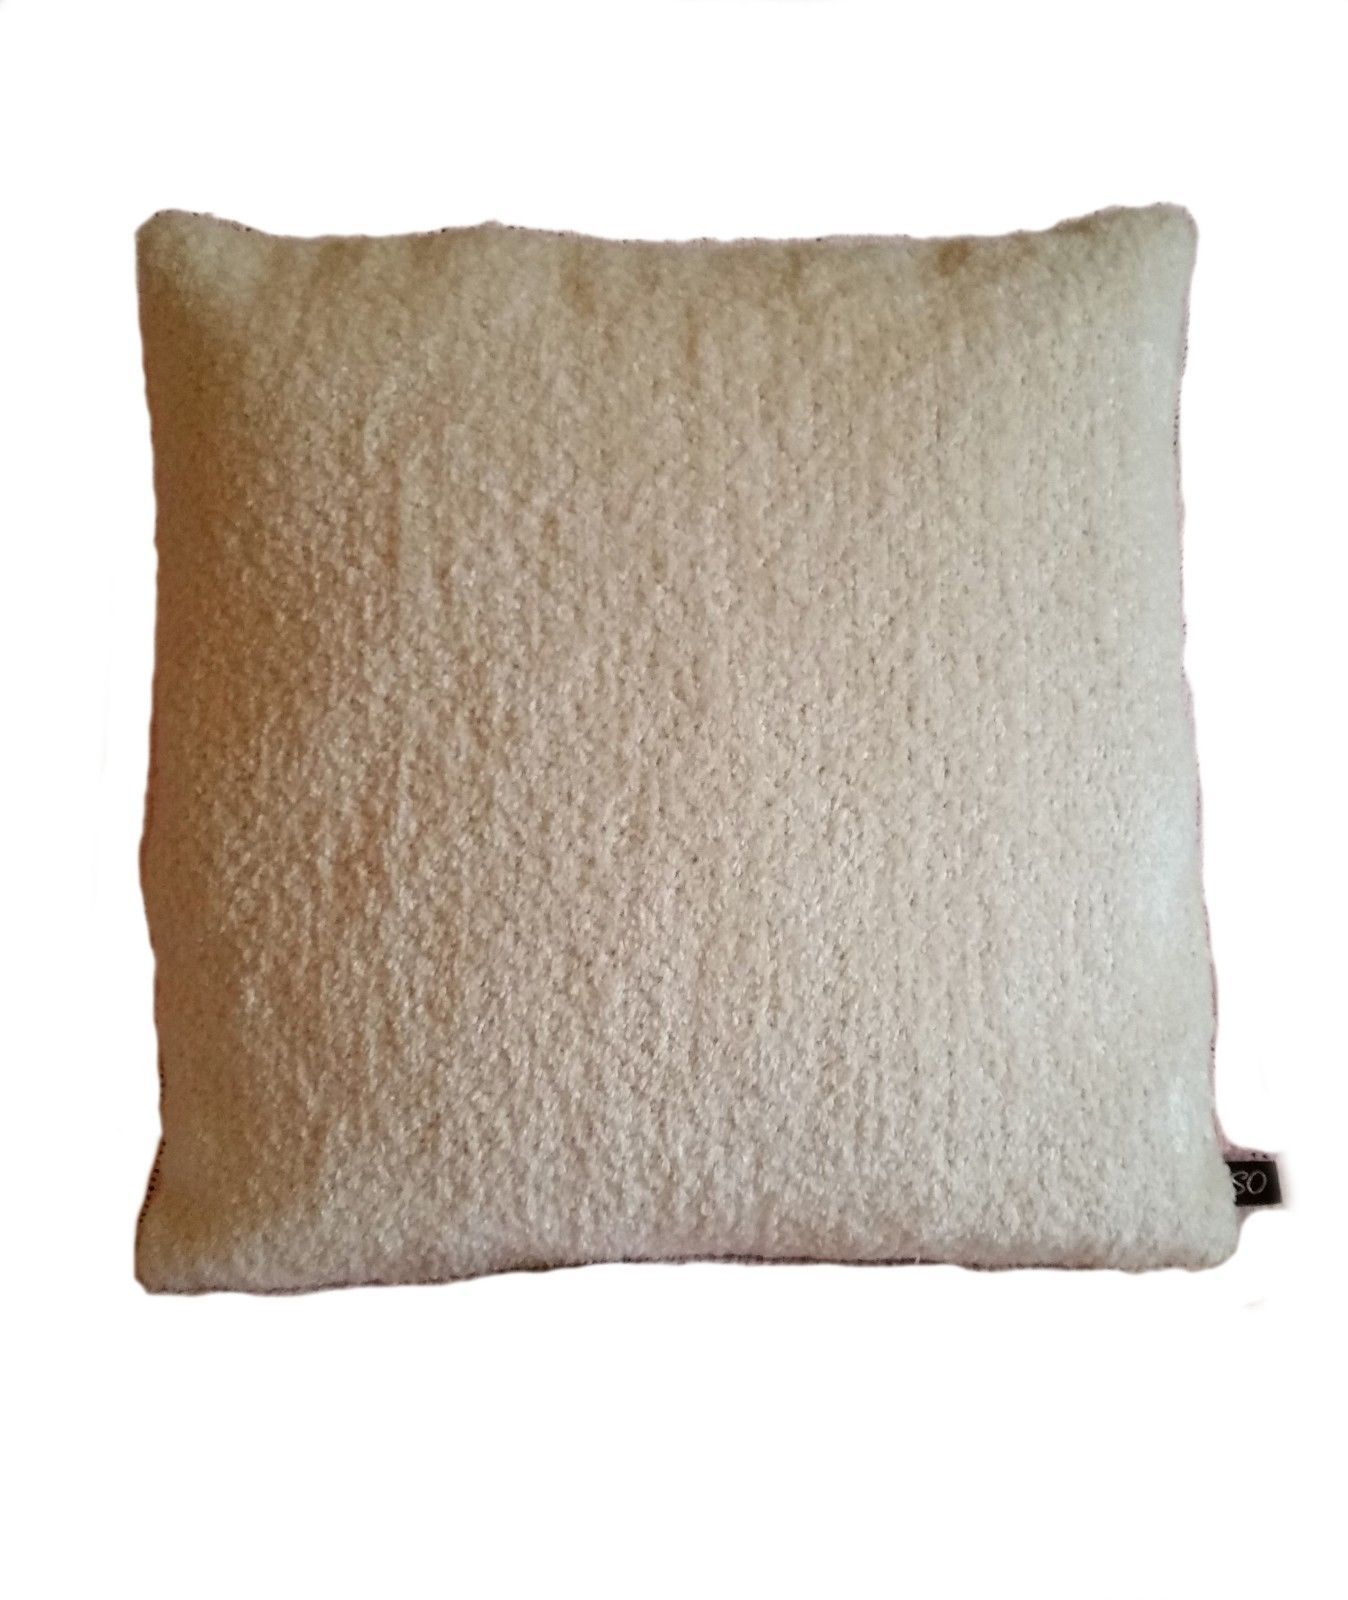 1 Pillow Cover Mid Century Cream Chenille - B3